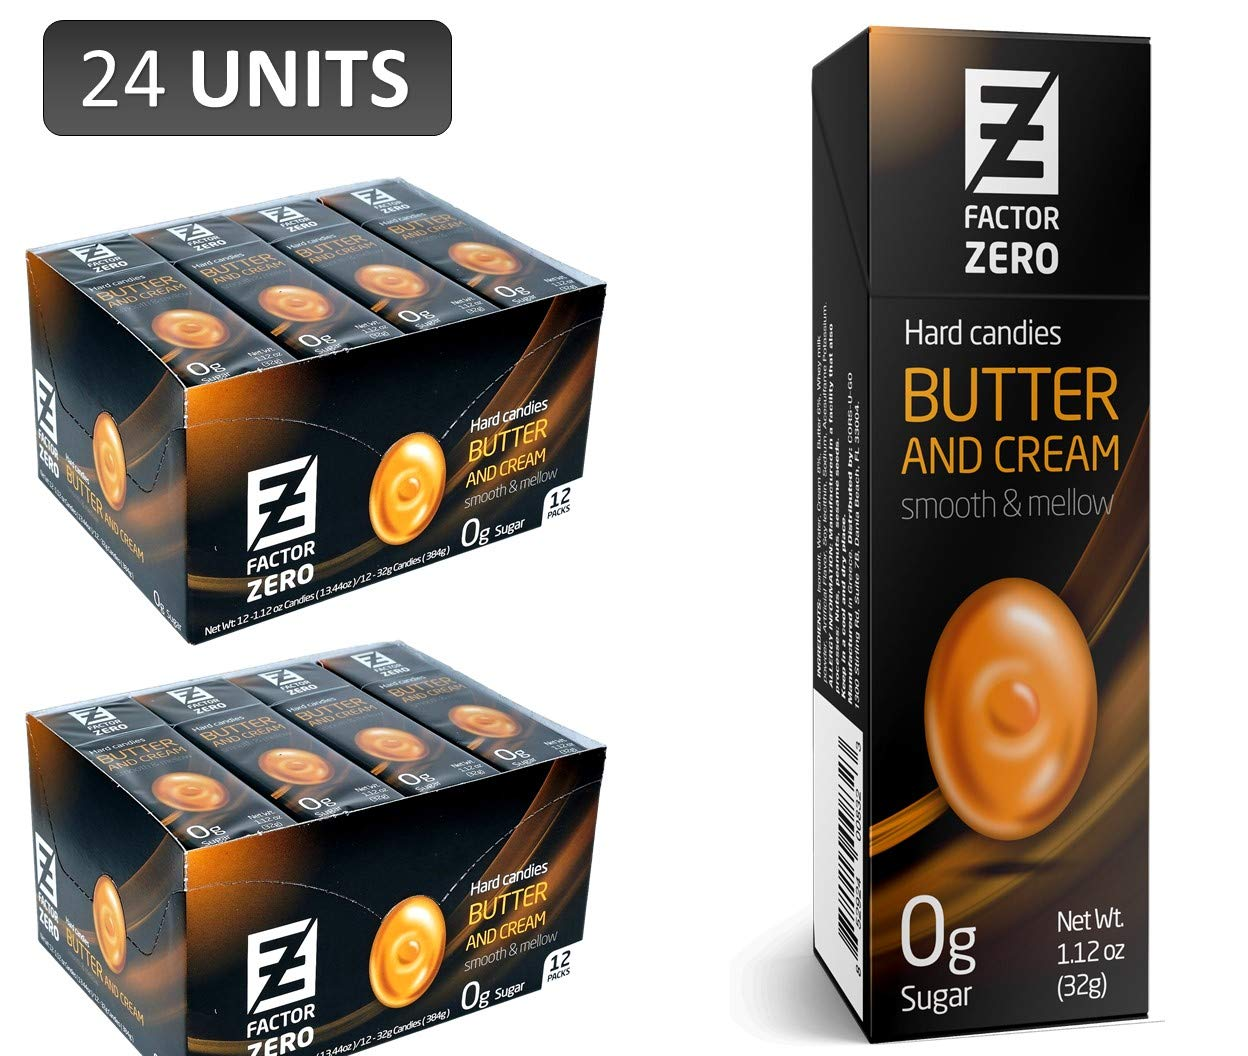 CDM product Sugar Free Hard Candy Factor Zero BUTTER & CREAM (24 Pack) Individually Packaged Gift Boxes Candies. FZ-HC-BUTT&CREA-24 big image